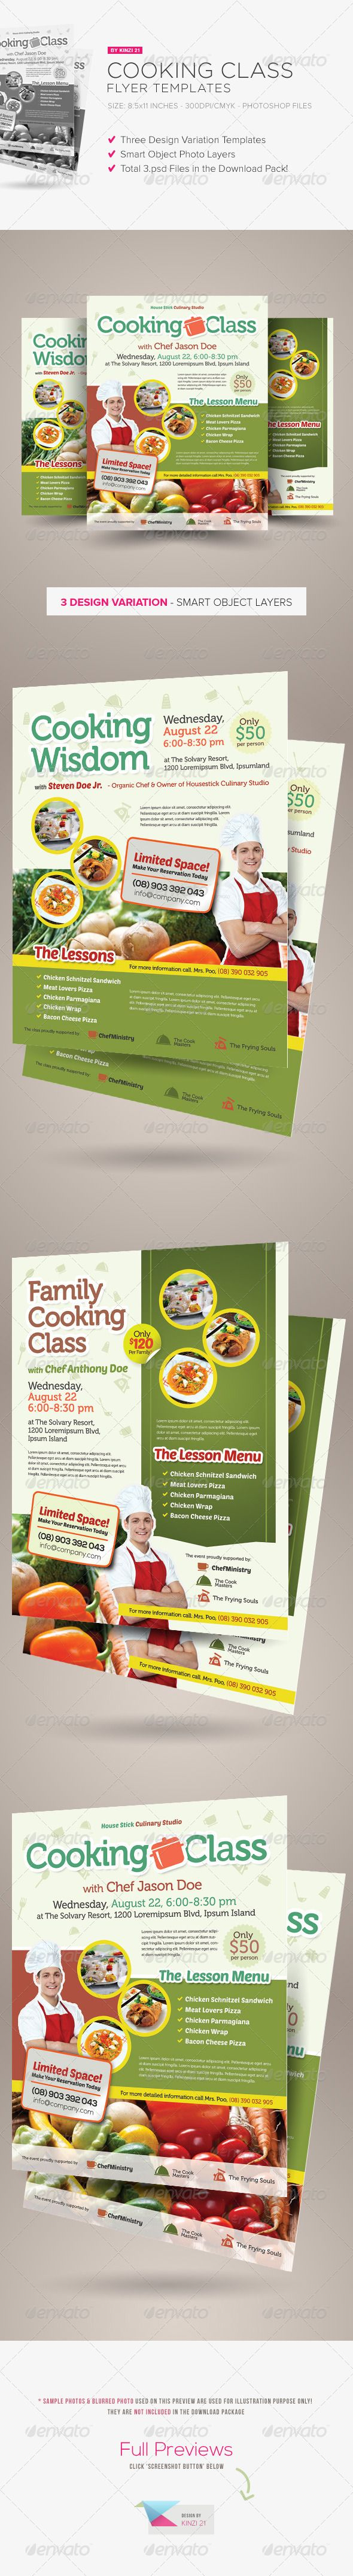 Cooking Class Flyers - Download the sourcefiles here: http://graphicriver.net/item/cooking-class-flyers/5871441?r=kinzi21